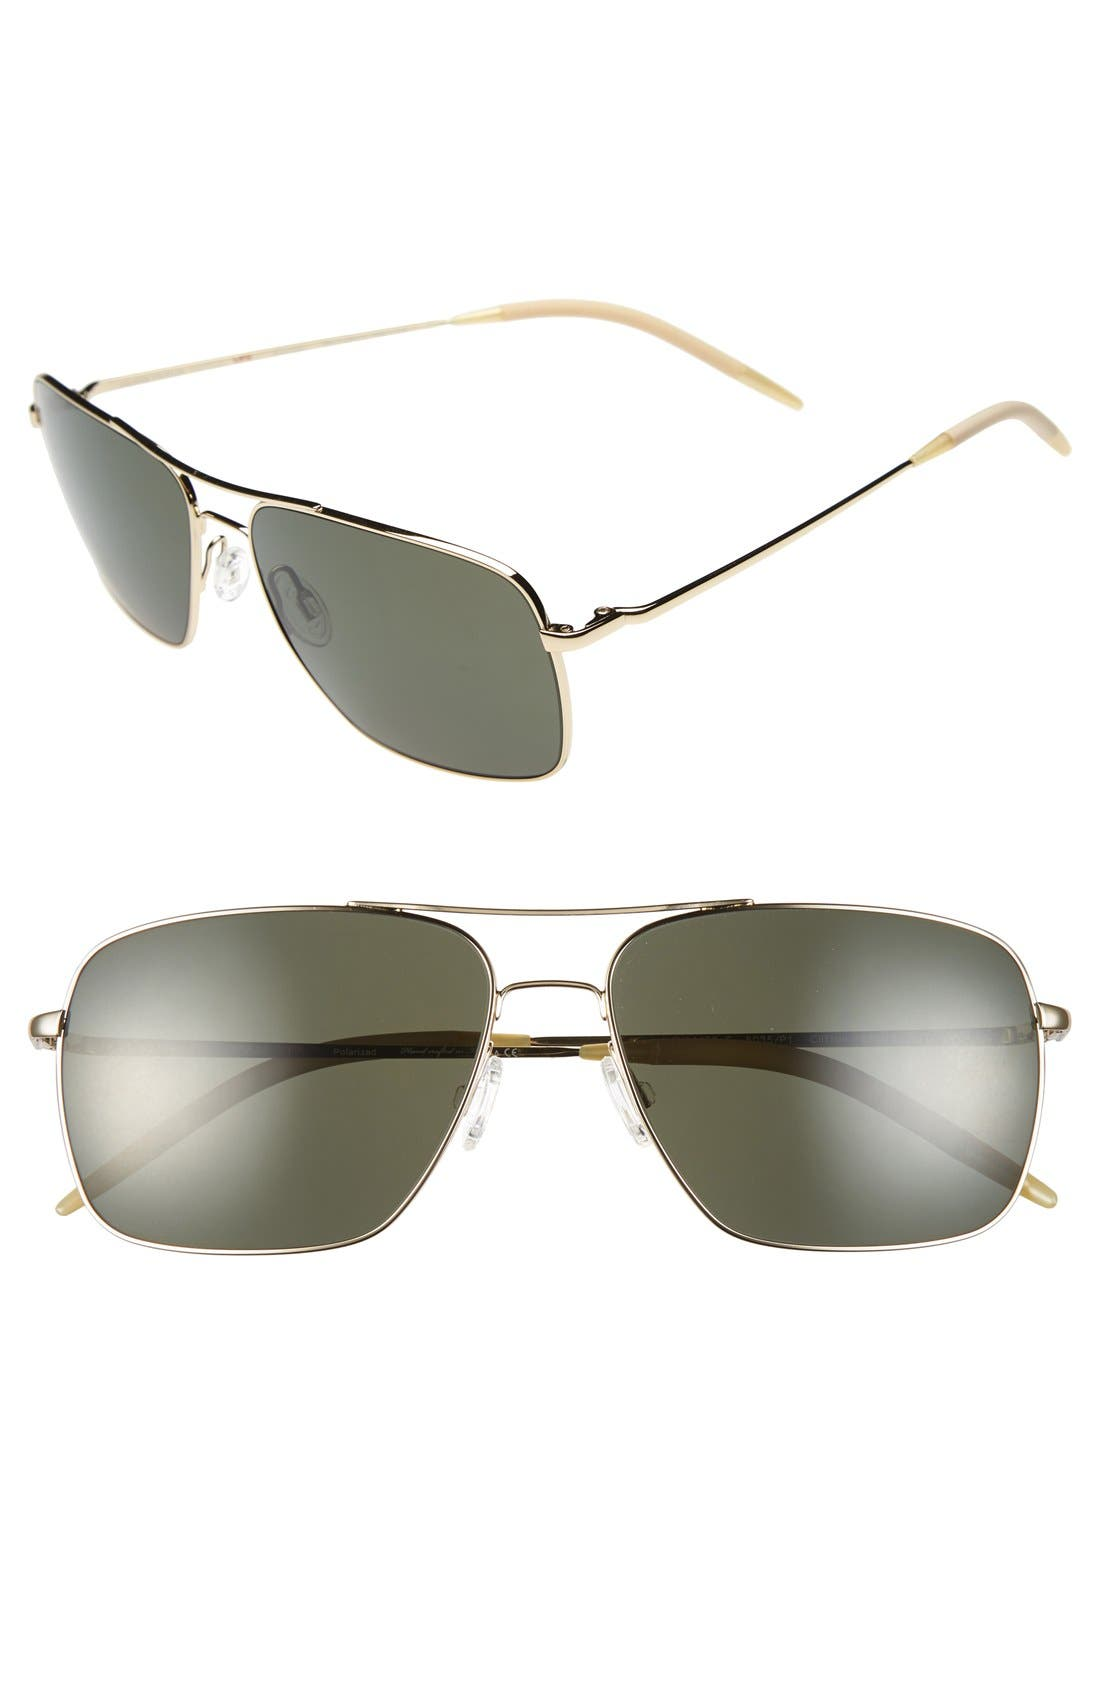 Alternate Image 1 Selected - Oliver Peoples 'Marmont' 58mm Polarized Sunglasses